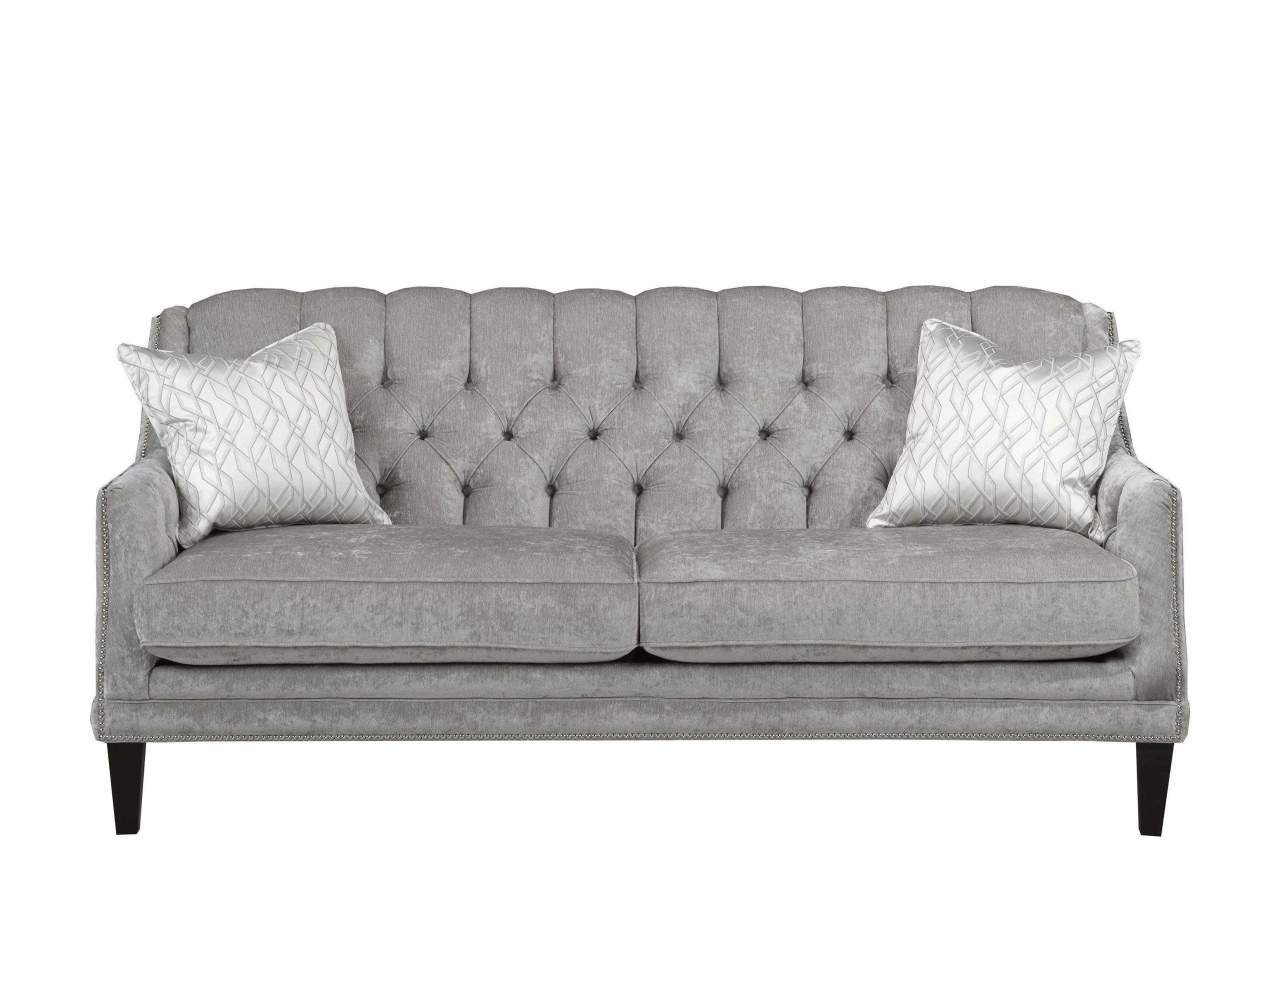 luxus garten frisch japan sofa bed couch bett procura home blog japan sofa bed of luxus garten